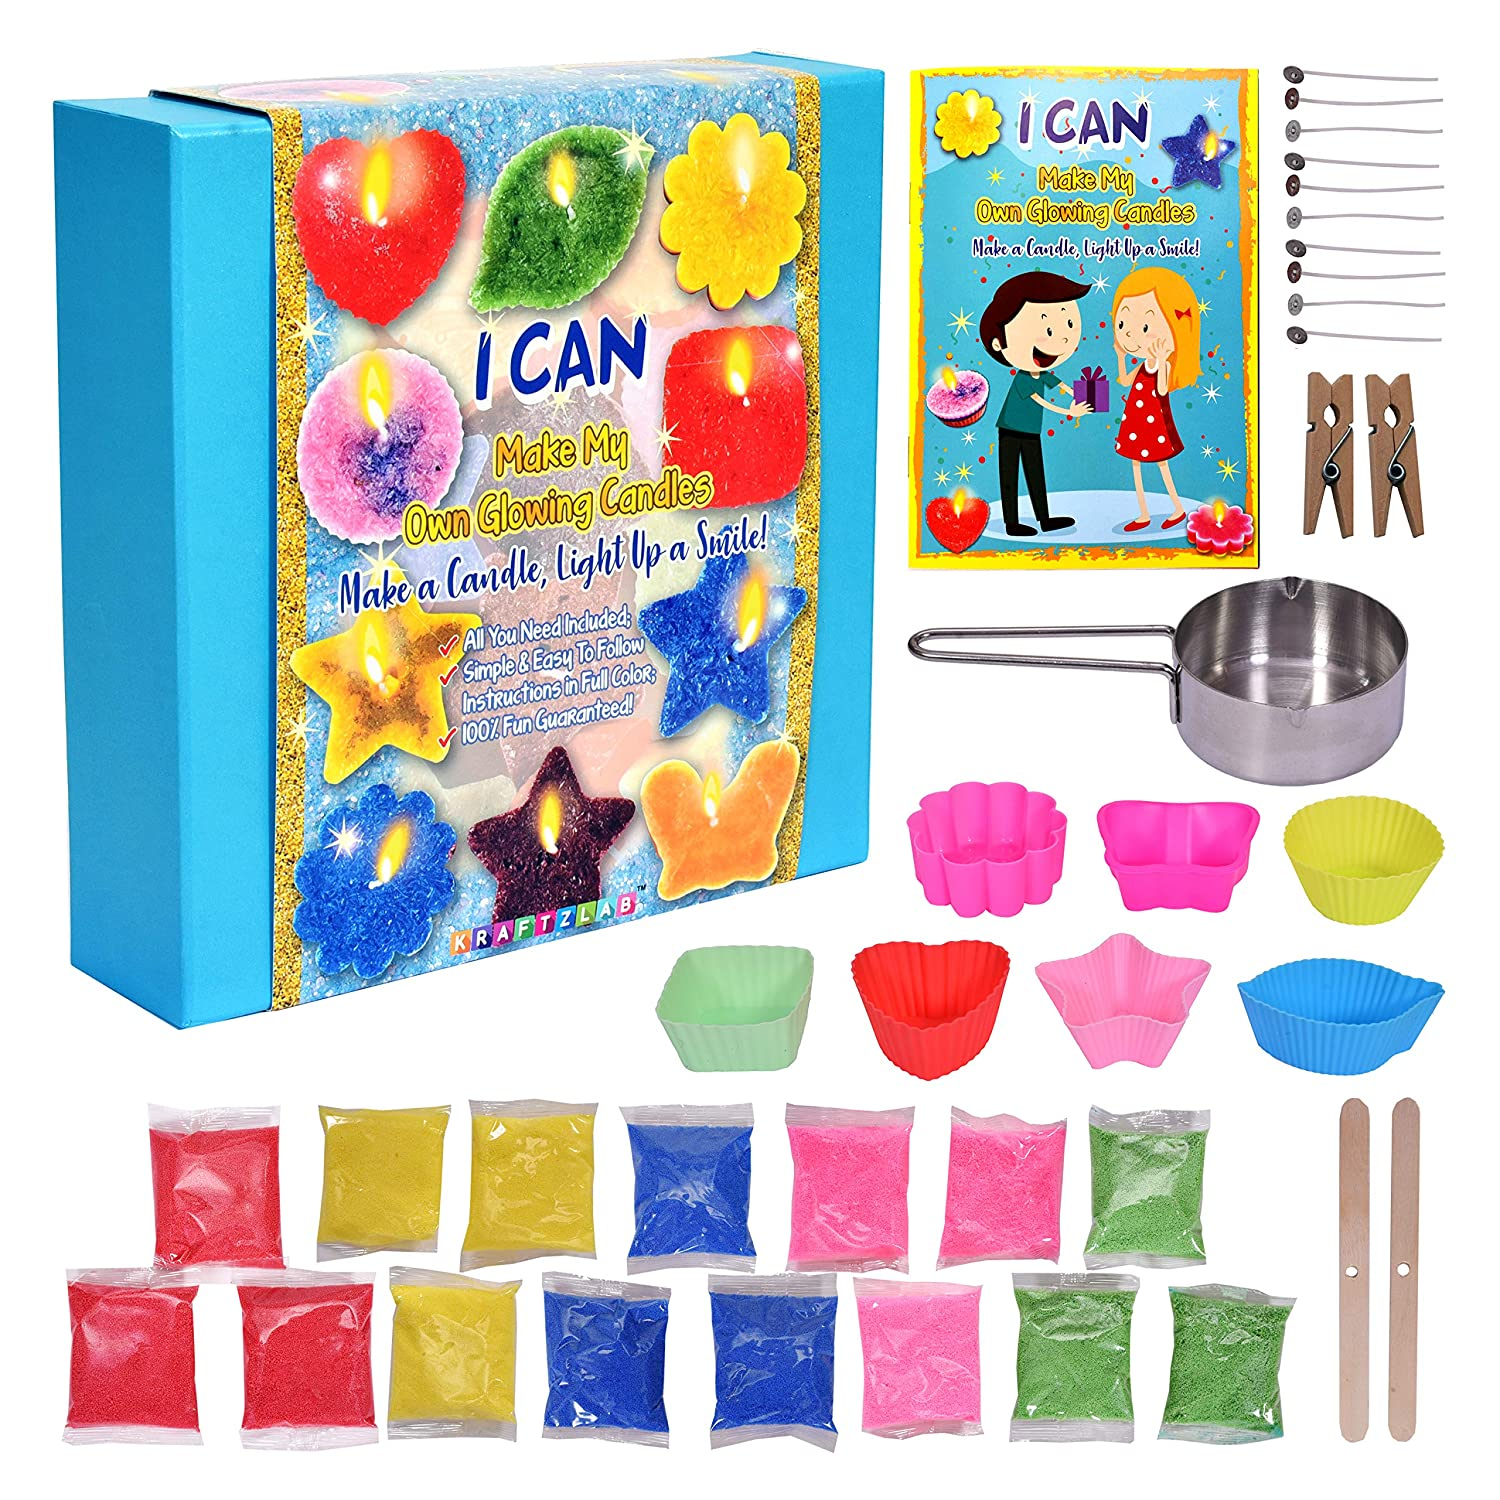 KRAFTZLAB Ultimate Candle Making Kit Supplies – Includes 5 Colors Candle Wax, 7 Candle Molds, 10 Wicks, 1 Melting Cup and More – Great DIY Starter Kit for Both Kids and Adults